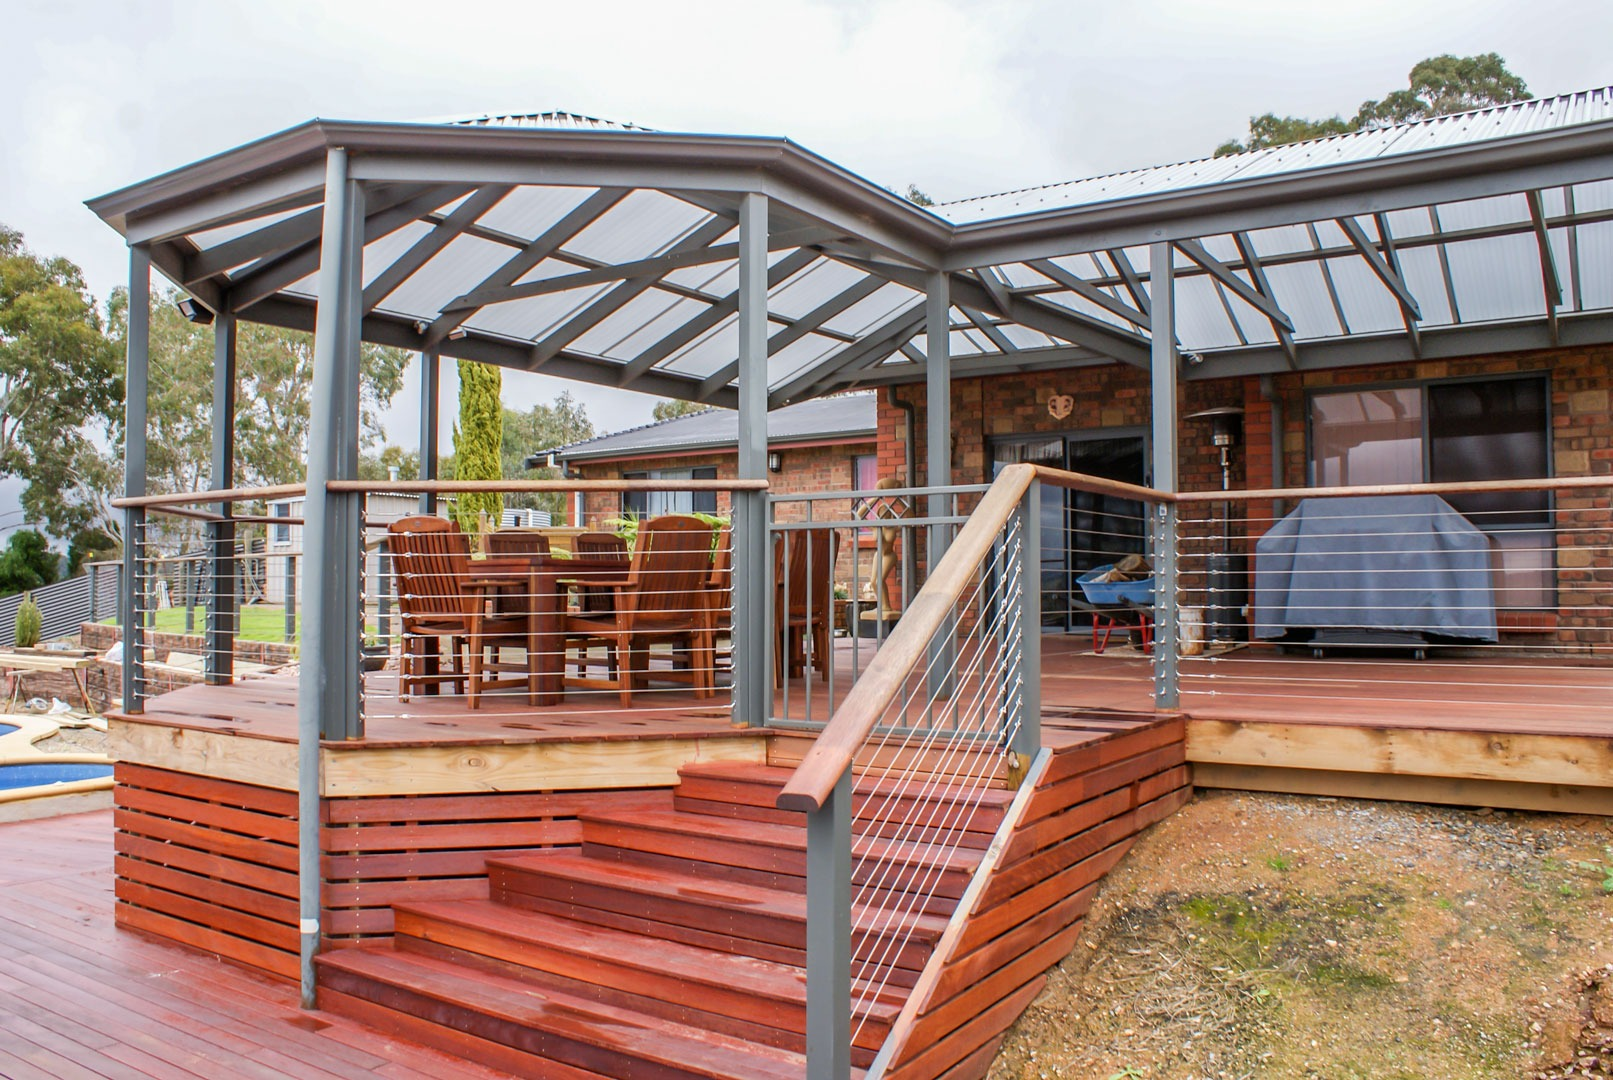 Raised timber verandah with metal balustrades